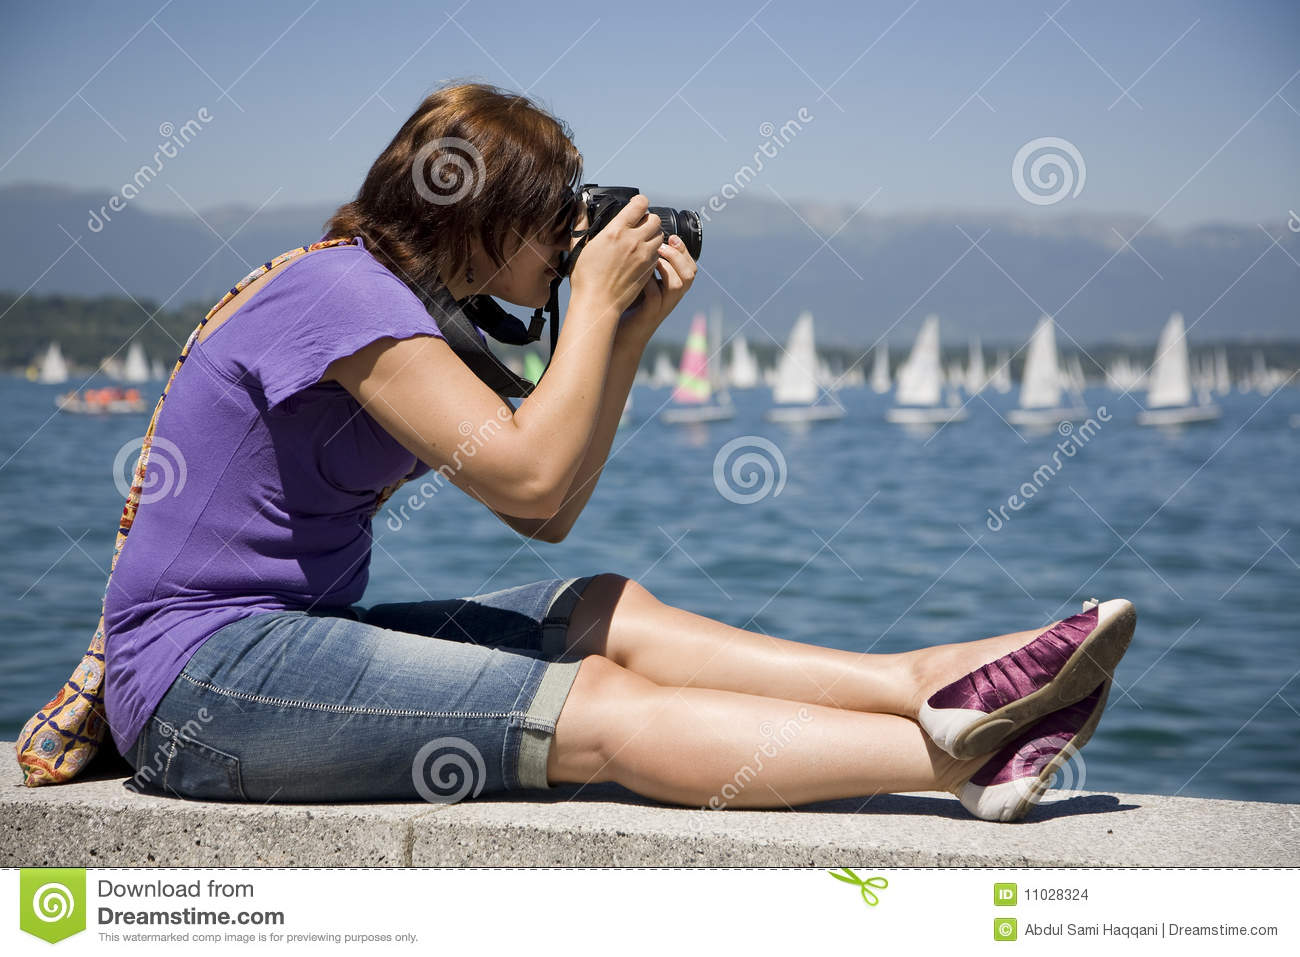 Female photographer by the water